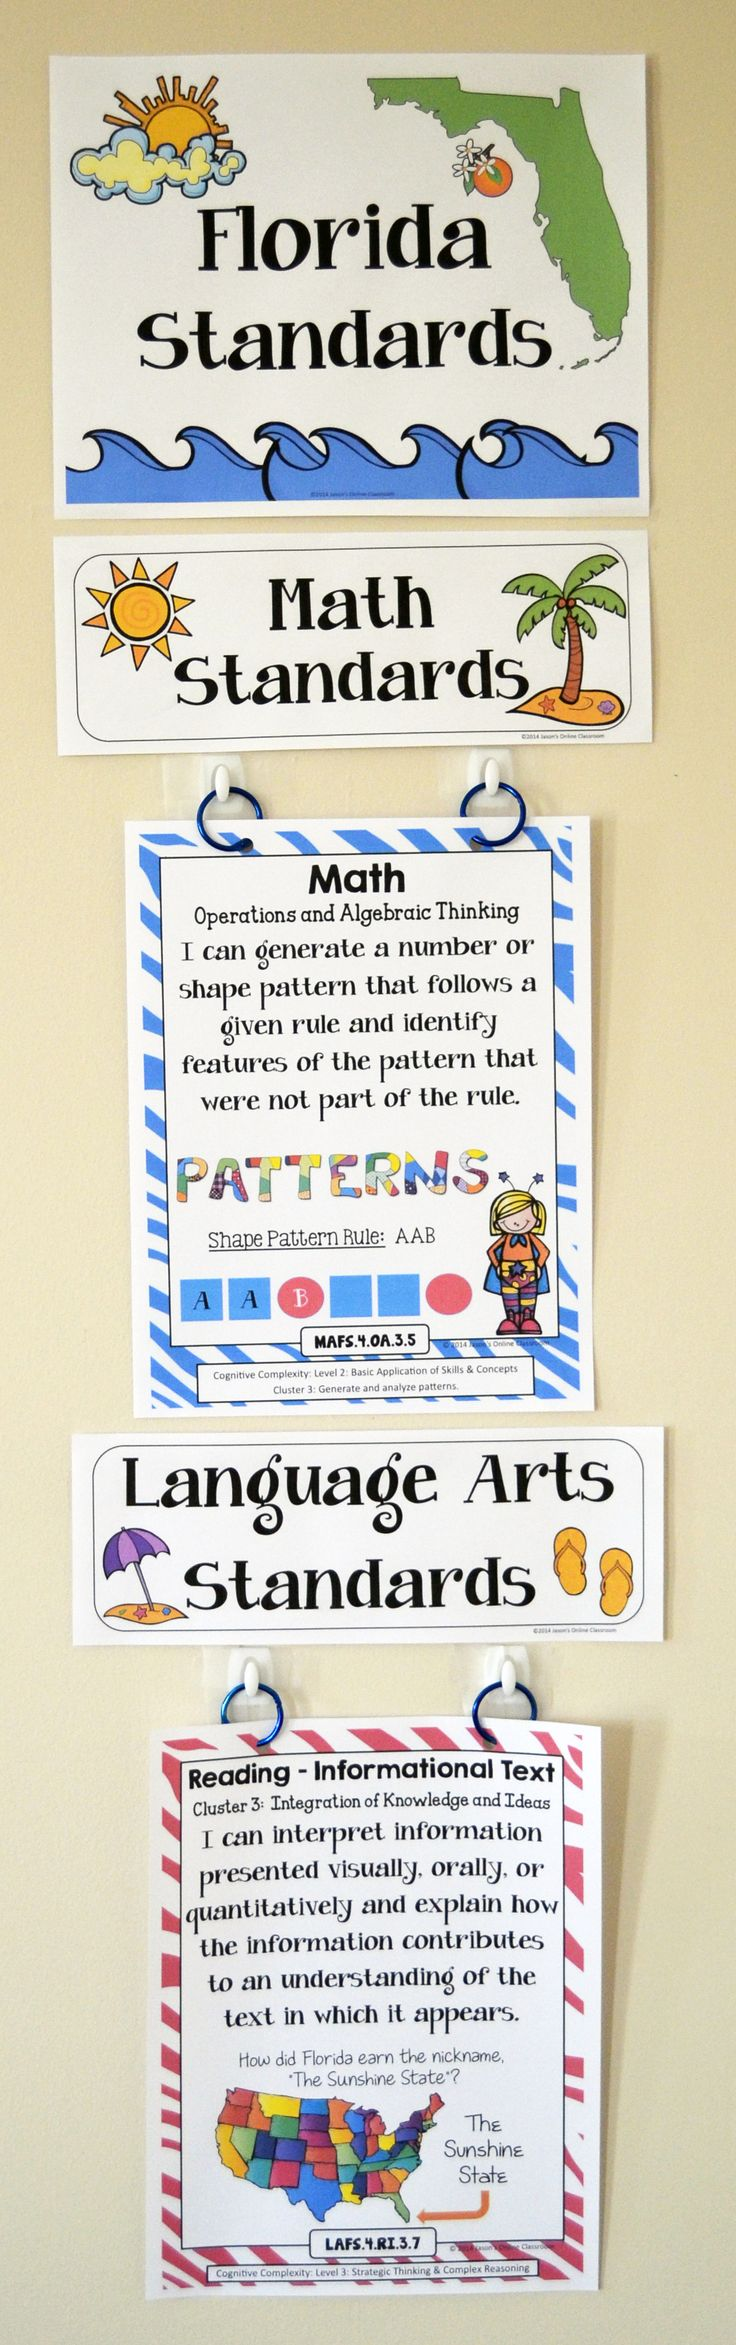 4th Grade Florida Standards - Create amazing classroom displays, focus walls, and reference binders! There are also miniature posters included that are the perfect size for interactive notebooks or student reward badges! Stay organized and help the students take charge of their own learning!